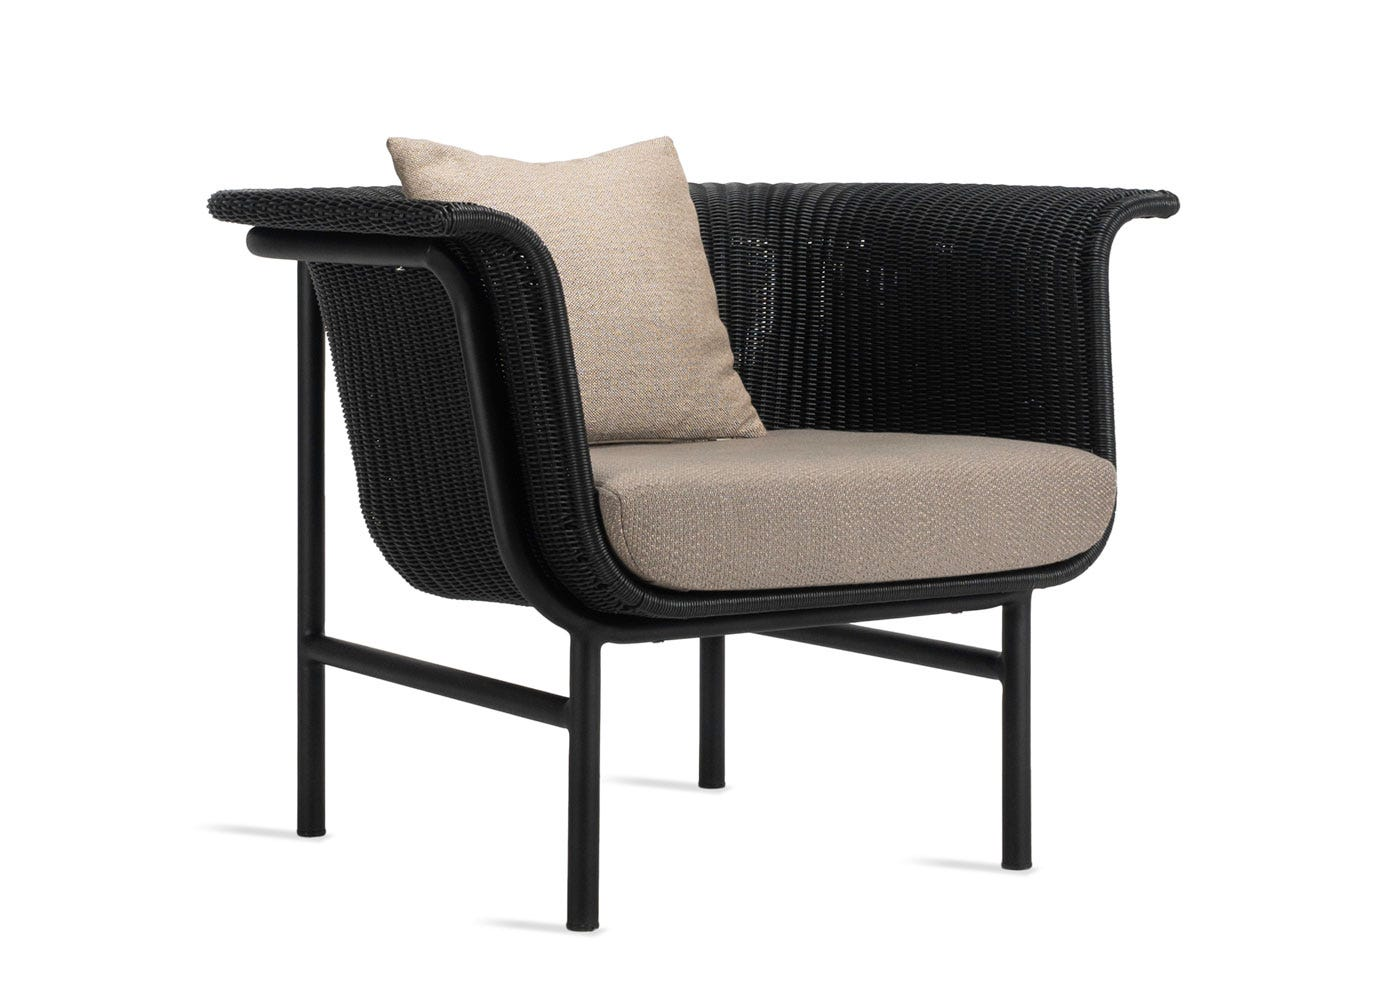 Wicked lounge chair almond material (please note the pictured scatter cushion is not included) - Side profile